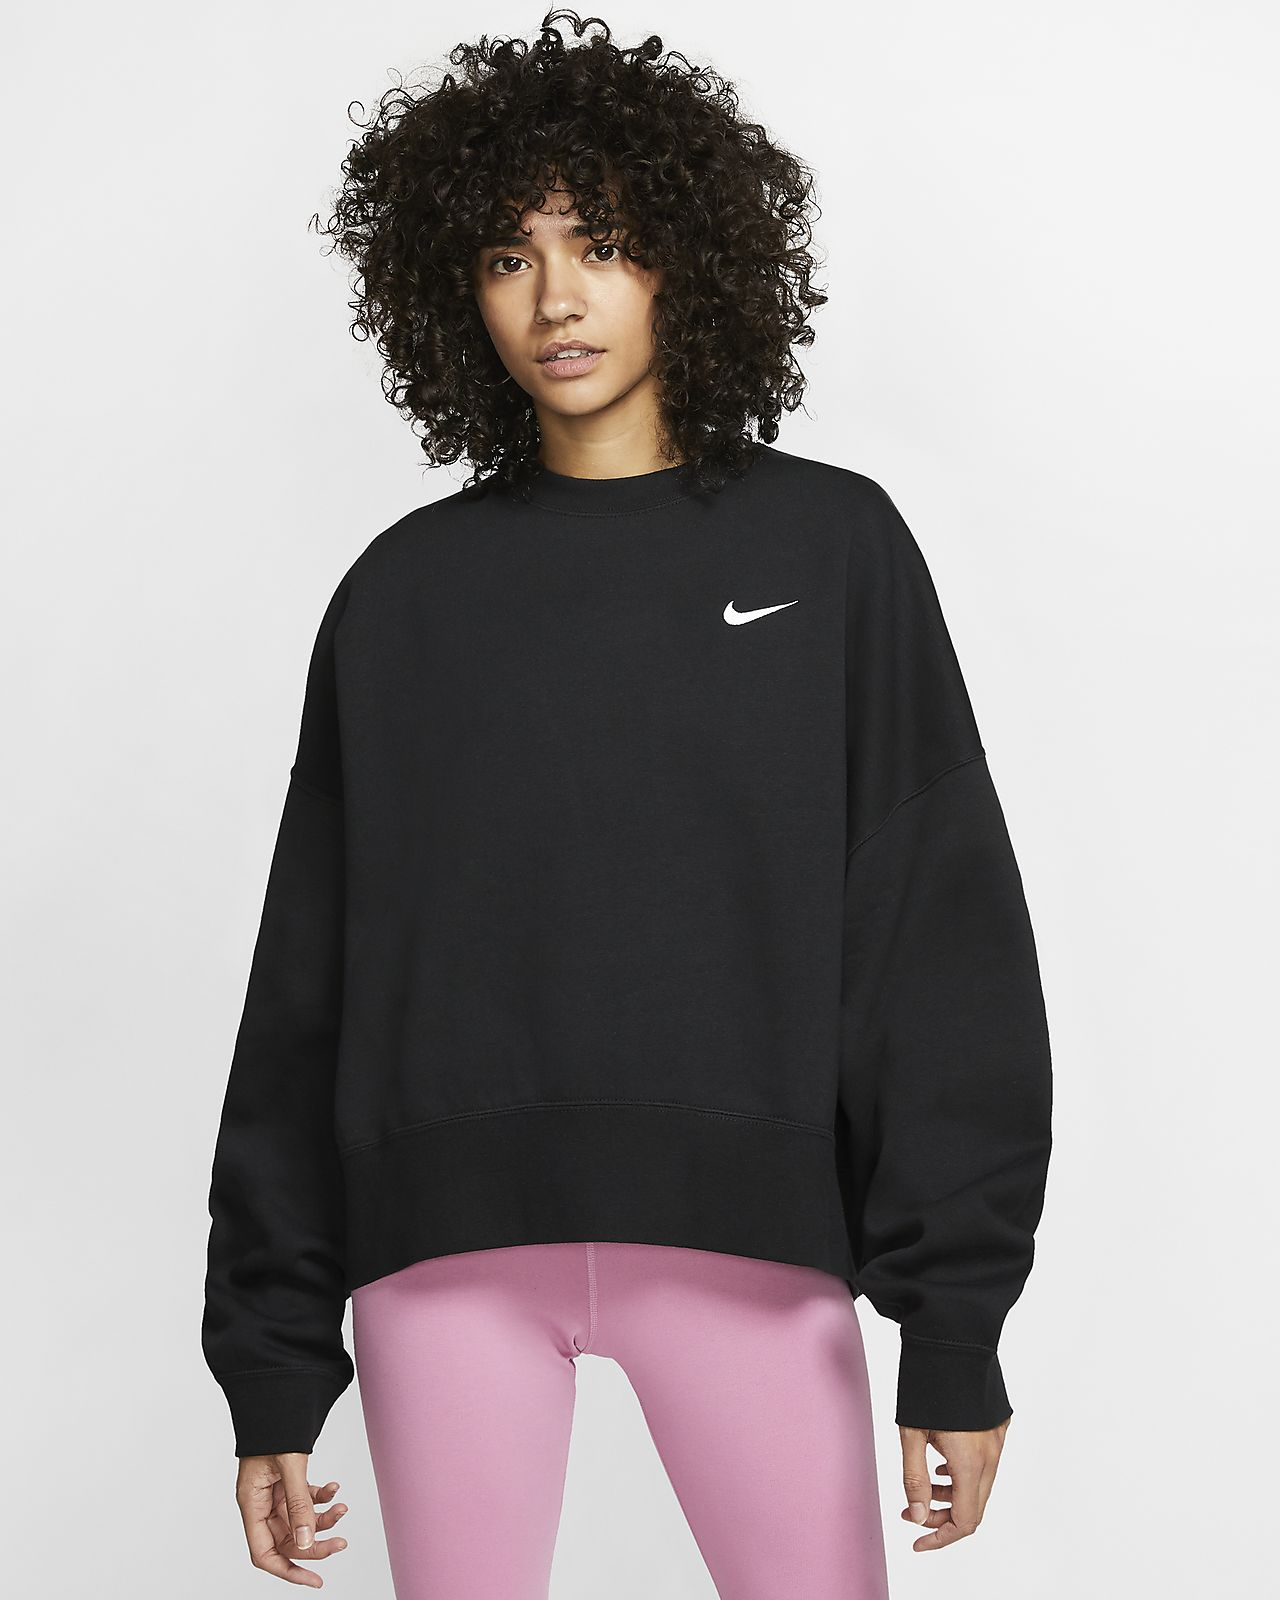 Nike Sportswear Essentials Women's Fleece Crew